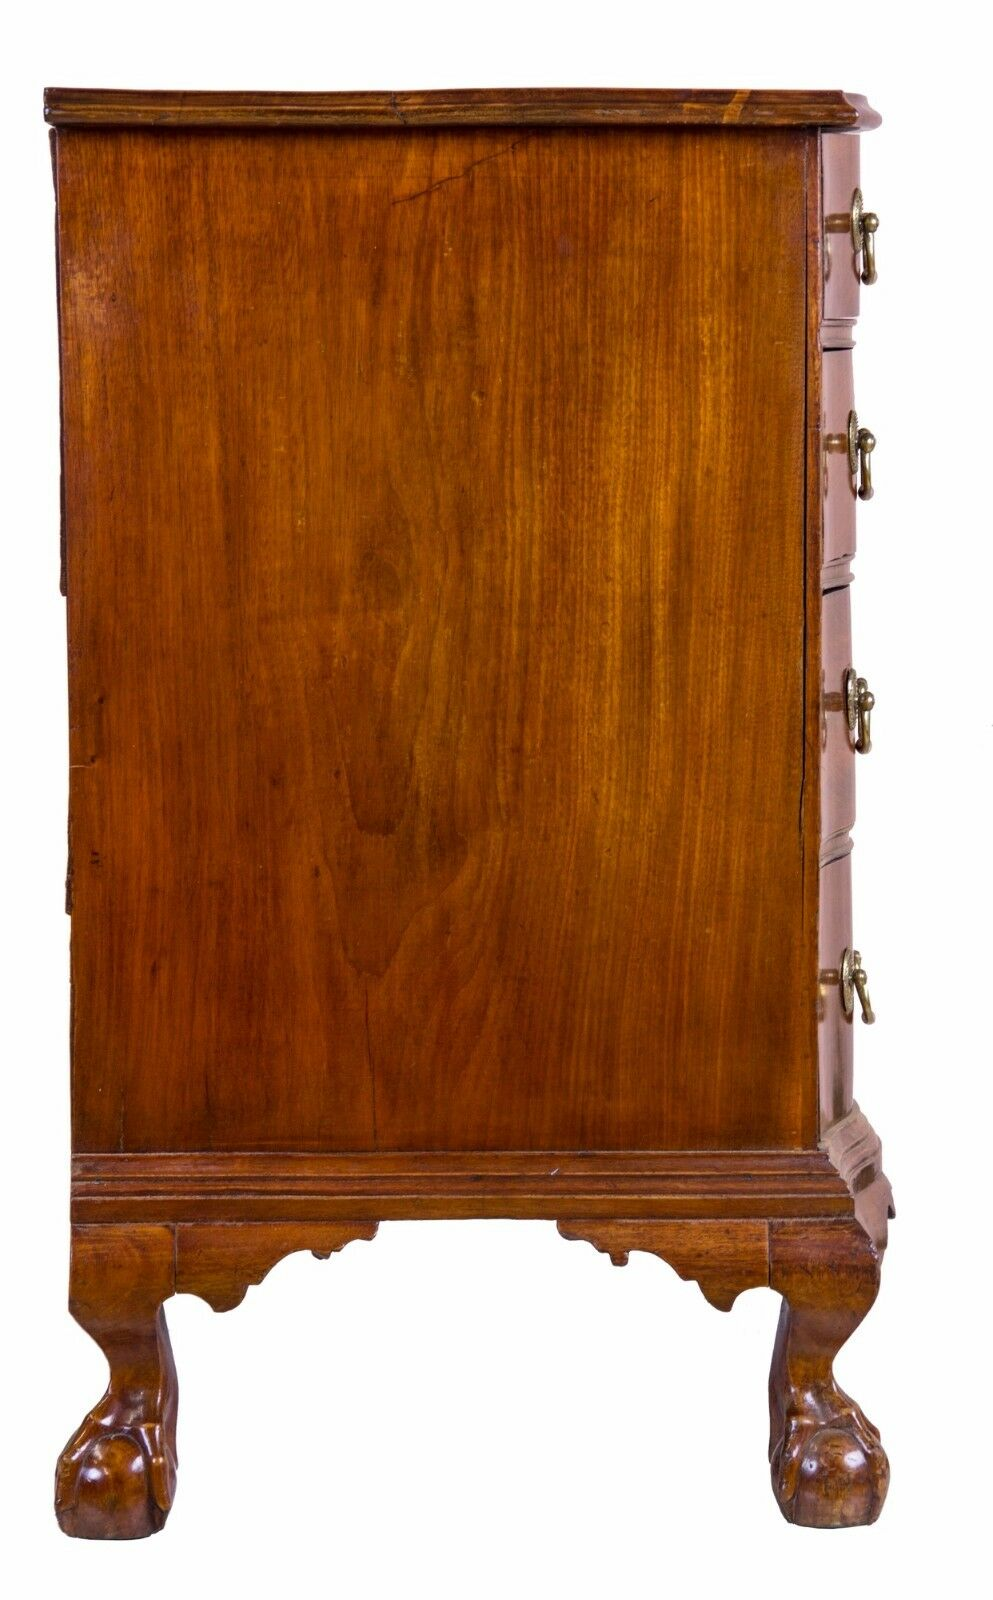 SWCChippendale Mahogany Oxbow Chest of Drawers